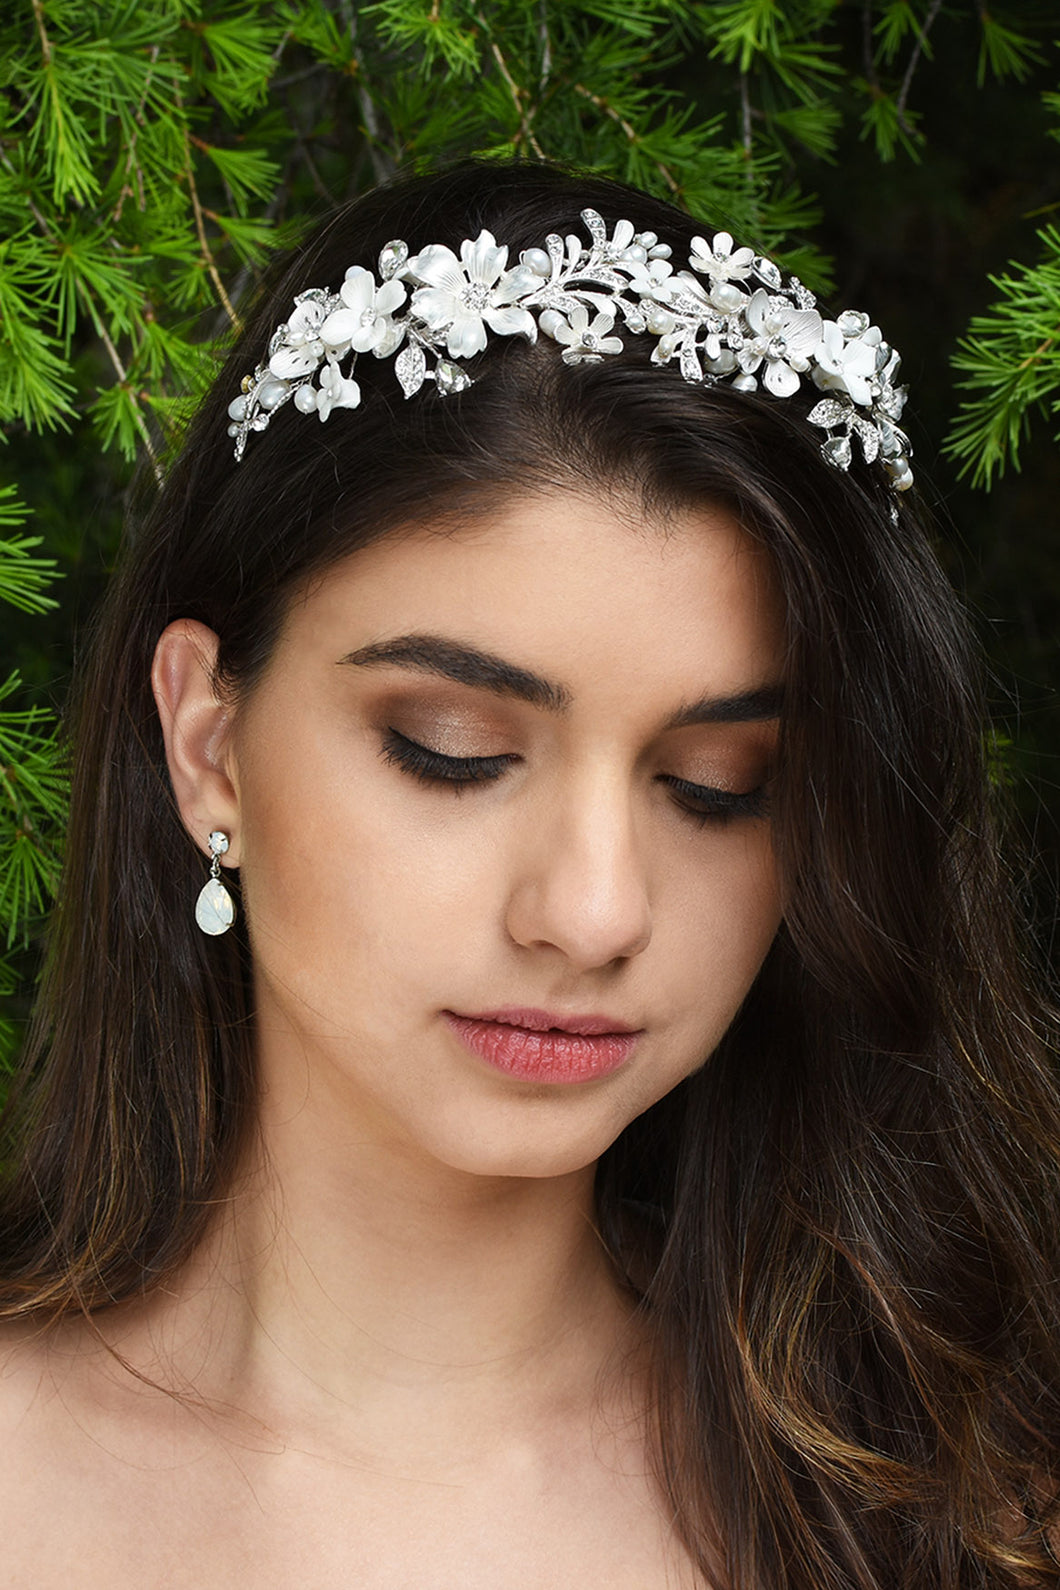 A dark hair bride wears a silver flowers and leaves headband with green leaves background